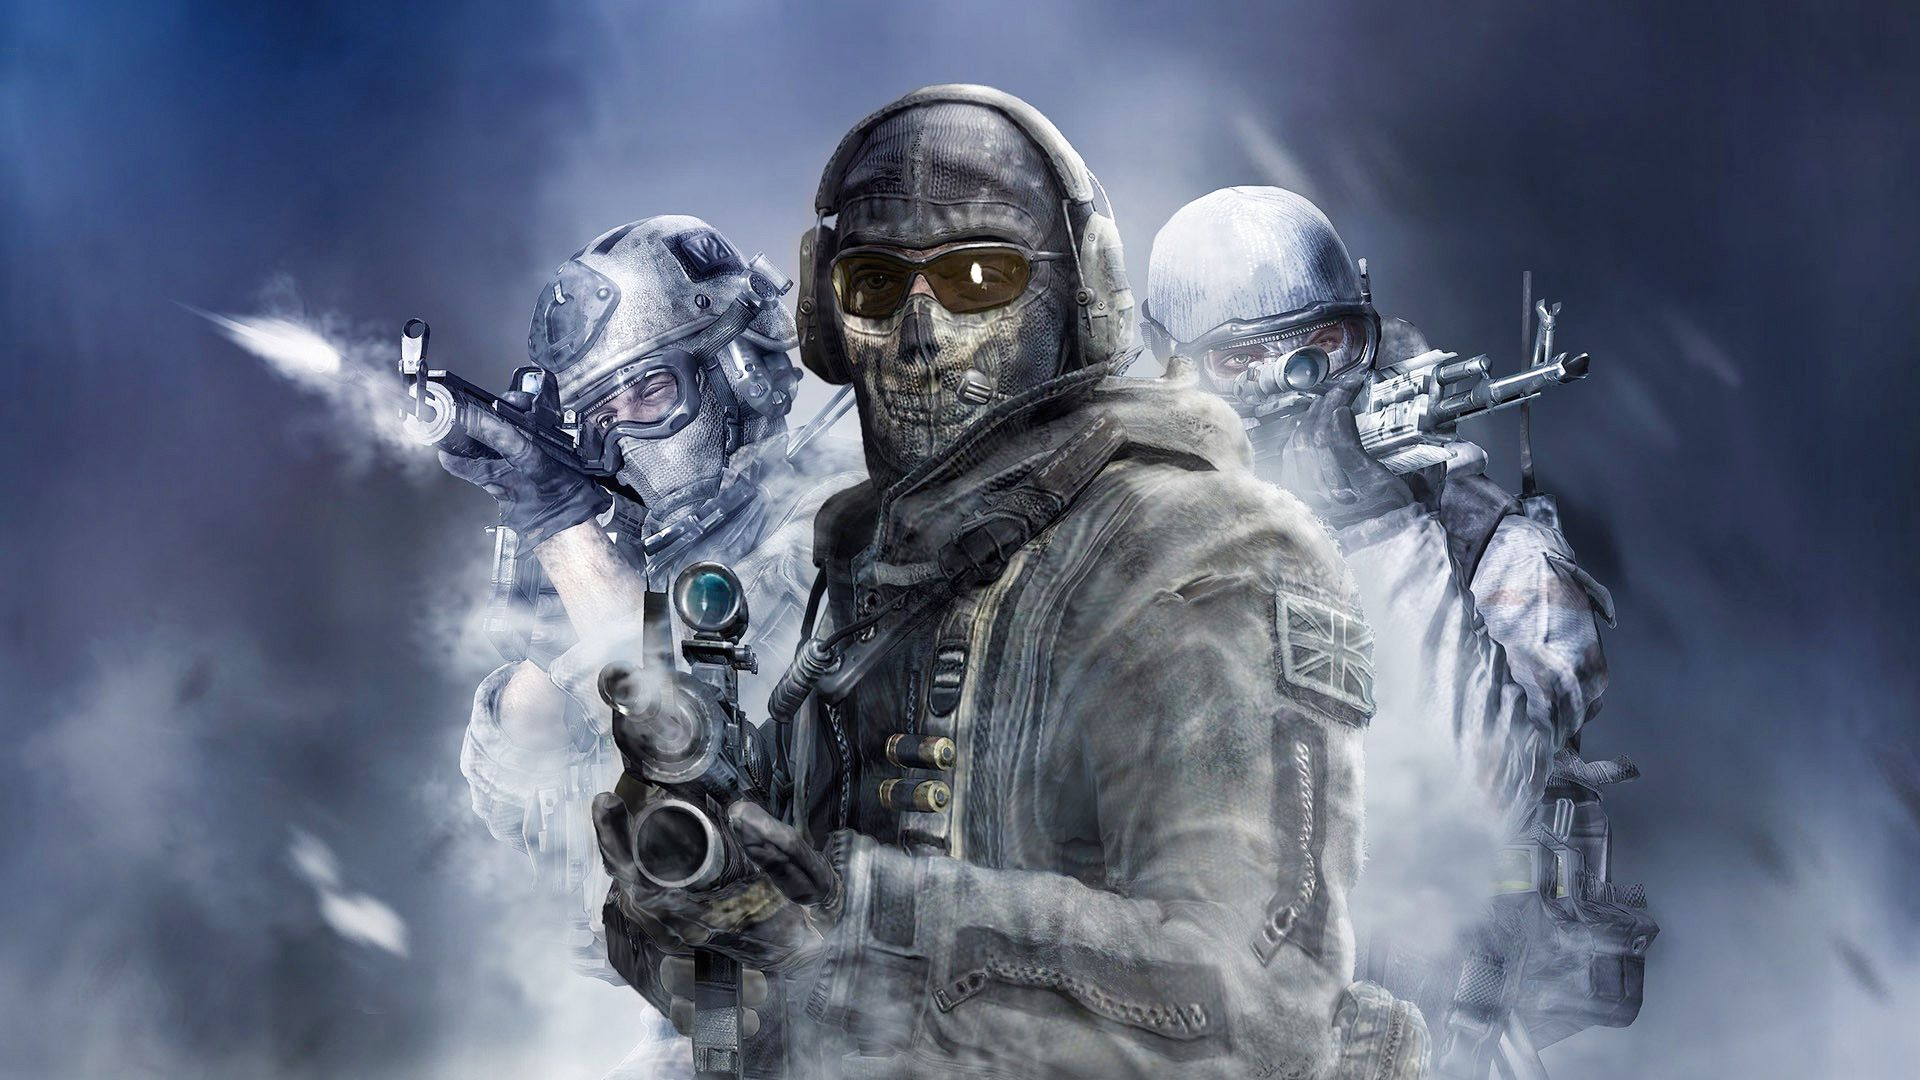 Call-of-duty-ghosts-wallpaper-awesome-1920x1080